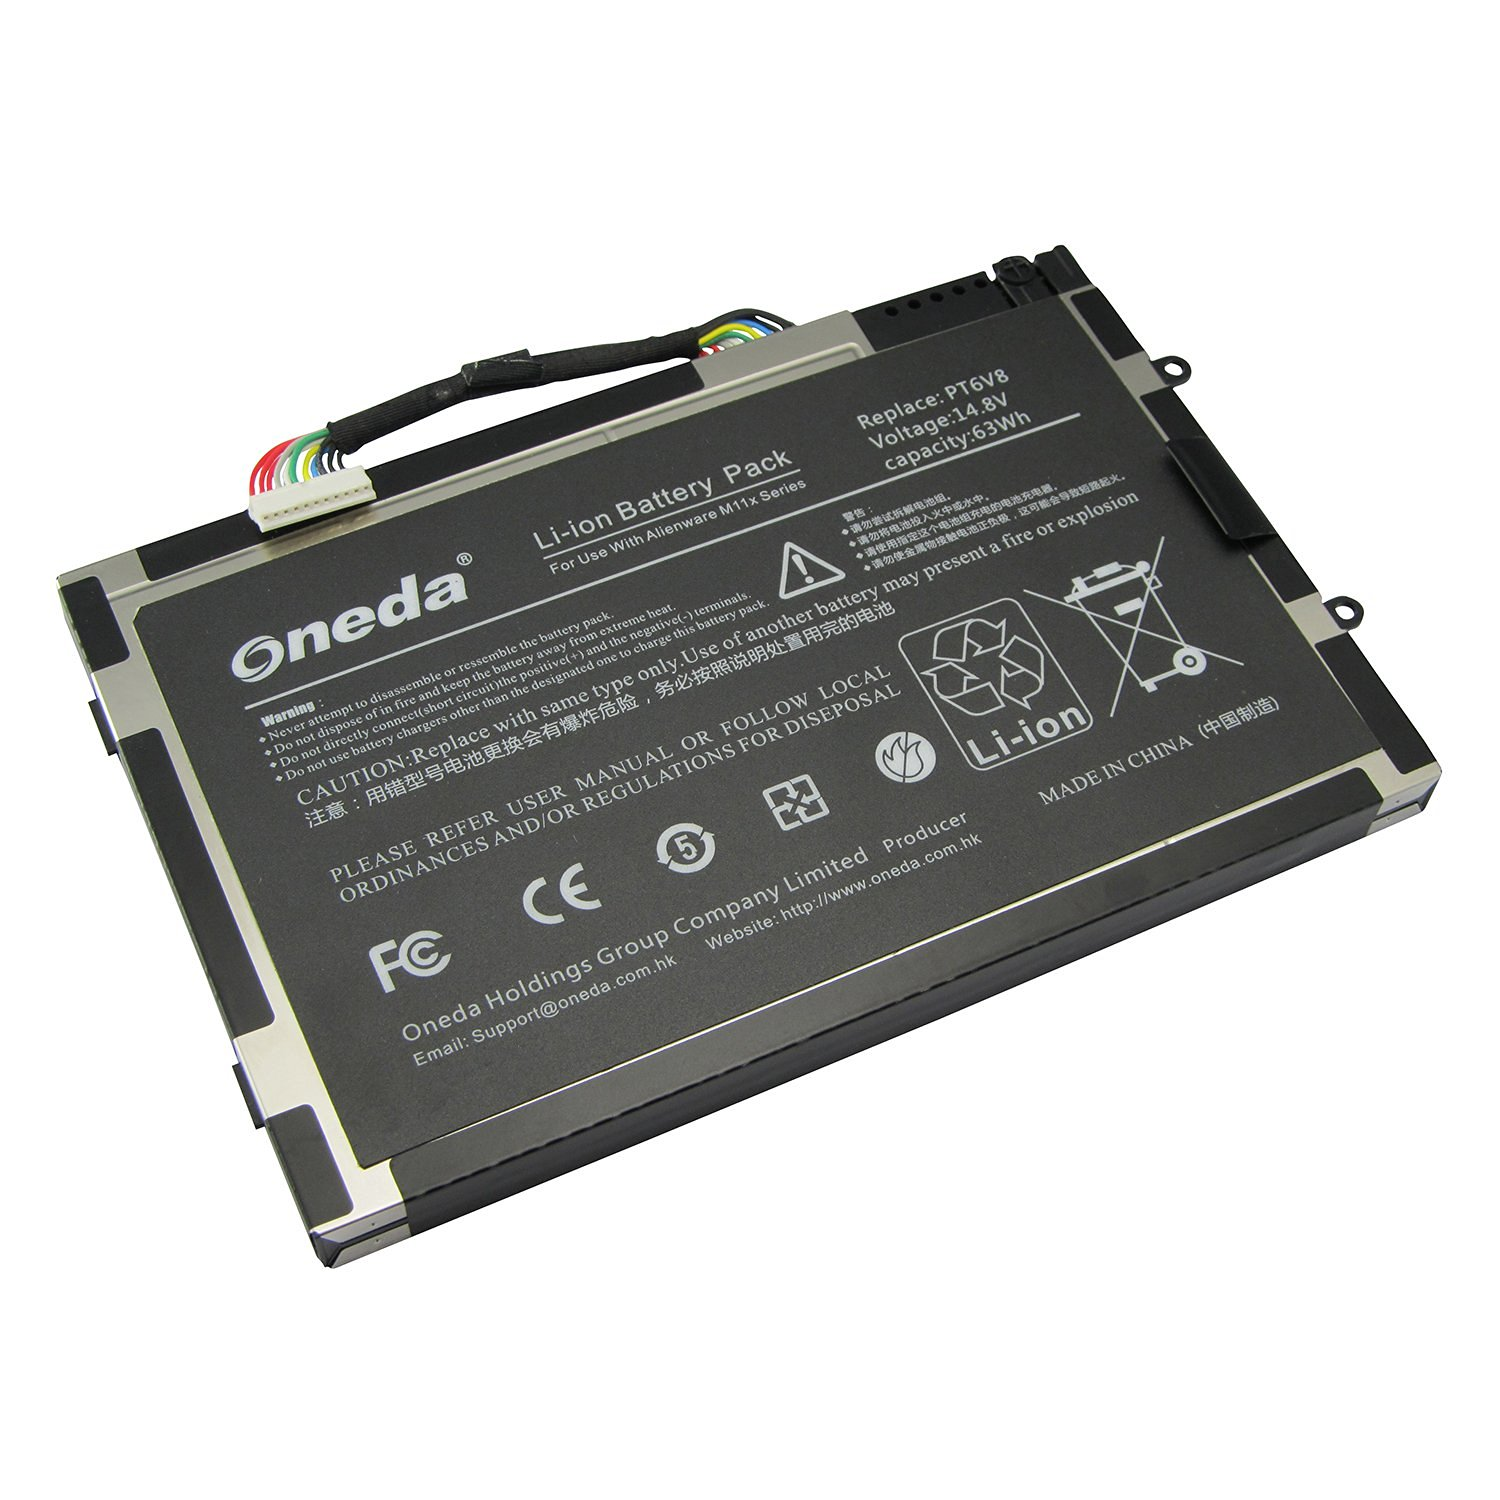 Oneda New High Performance Laptop Notebook Battery for Dell Alienware M11x R1 R2 R3 M14x Series ; Fits P/N: PT6V8 8P6X6 08P6X6 KR-08P6X6 T7YJR P06T Replacement batteries Pack [8-cell / 14.8V-63Wh]